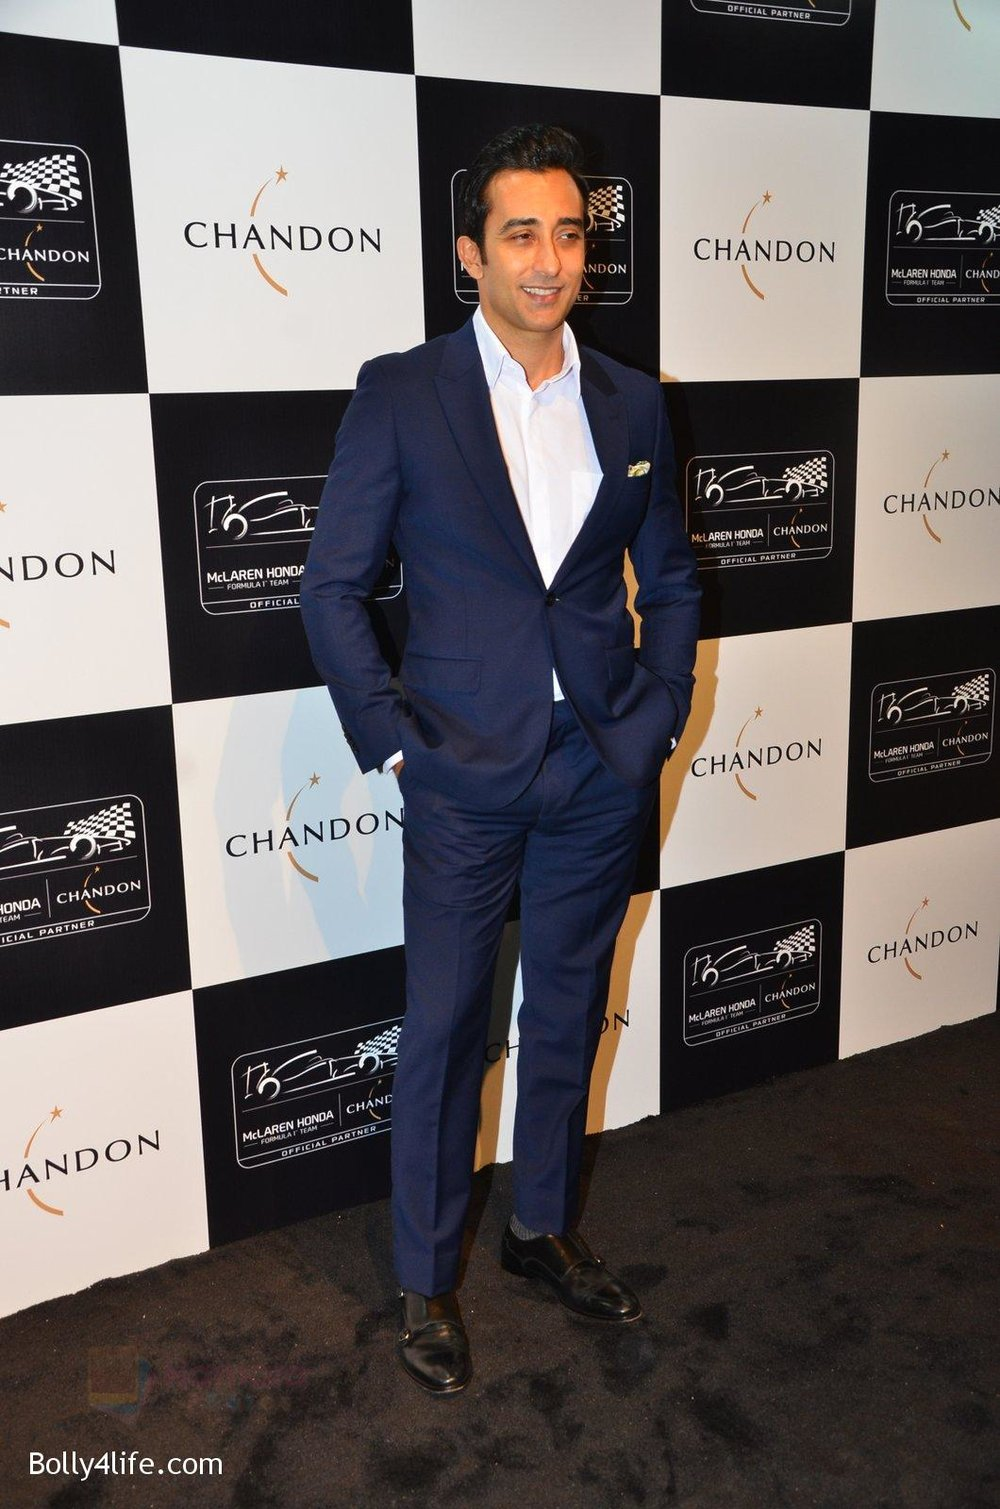 Rahul-Khanna-at-the-unveiling-Chandon-X-McLaren-Honda-installation-in-Mumbai-on-9th-Sept-2016-14.jpg